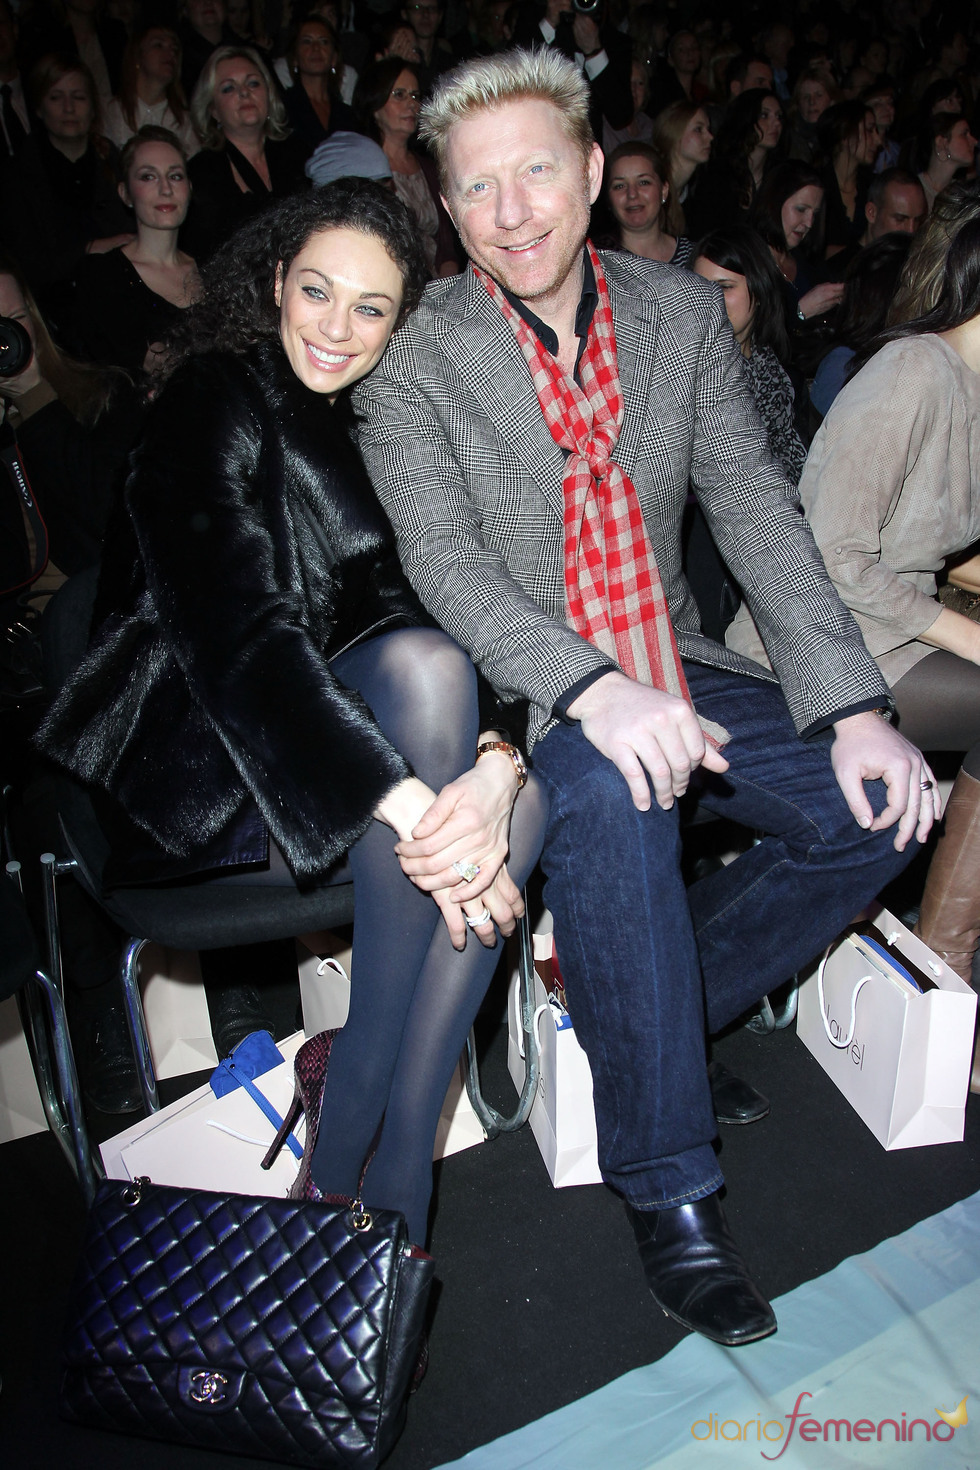 Boris Becker y su mujer Sharely Becker en la Berlín Fashion Week 2011